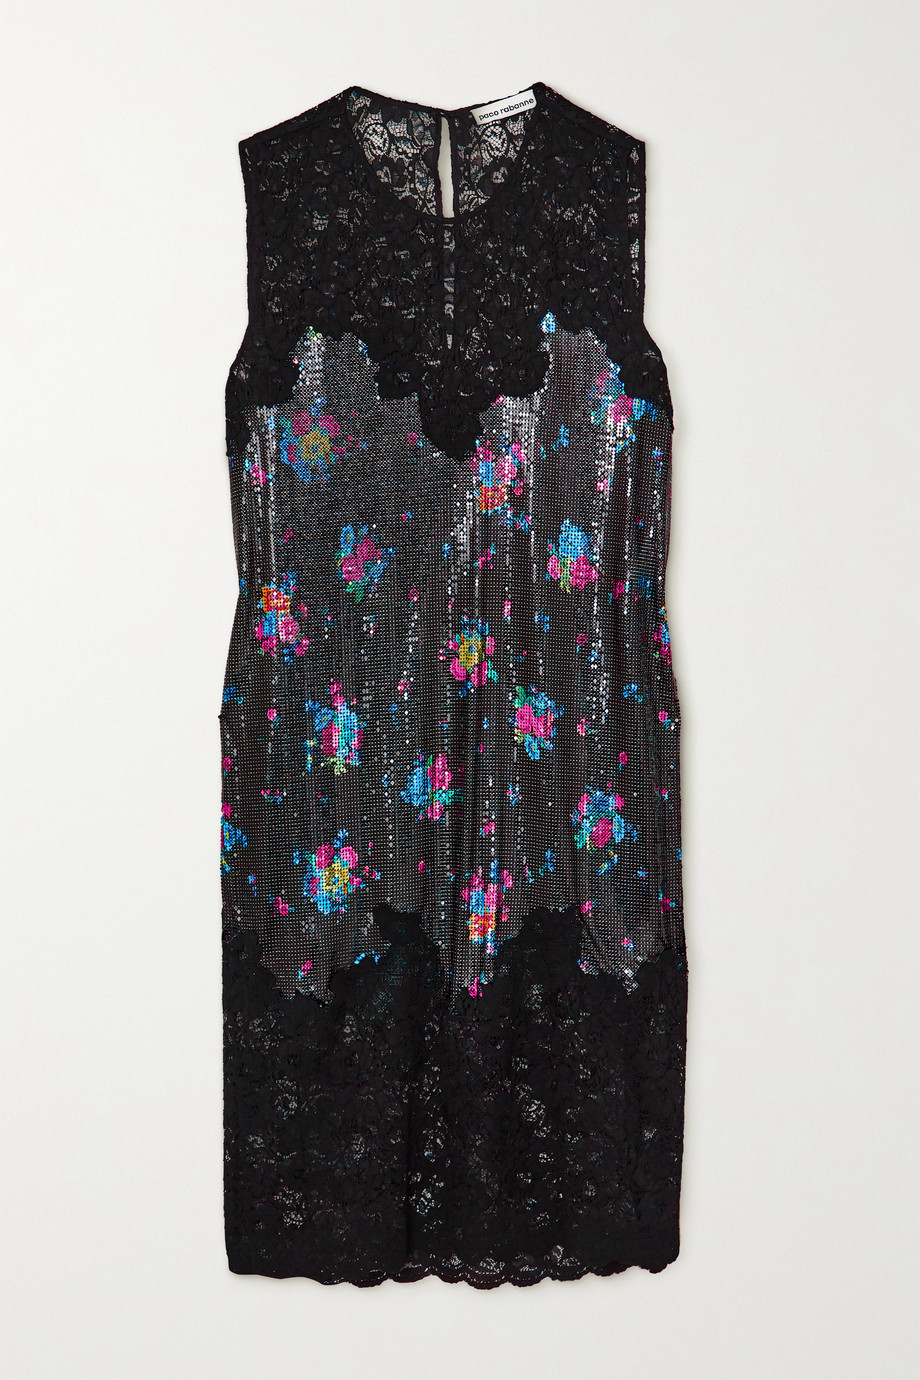 Paco Rabanne Lace and floral-print chainmail dress